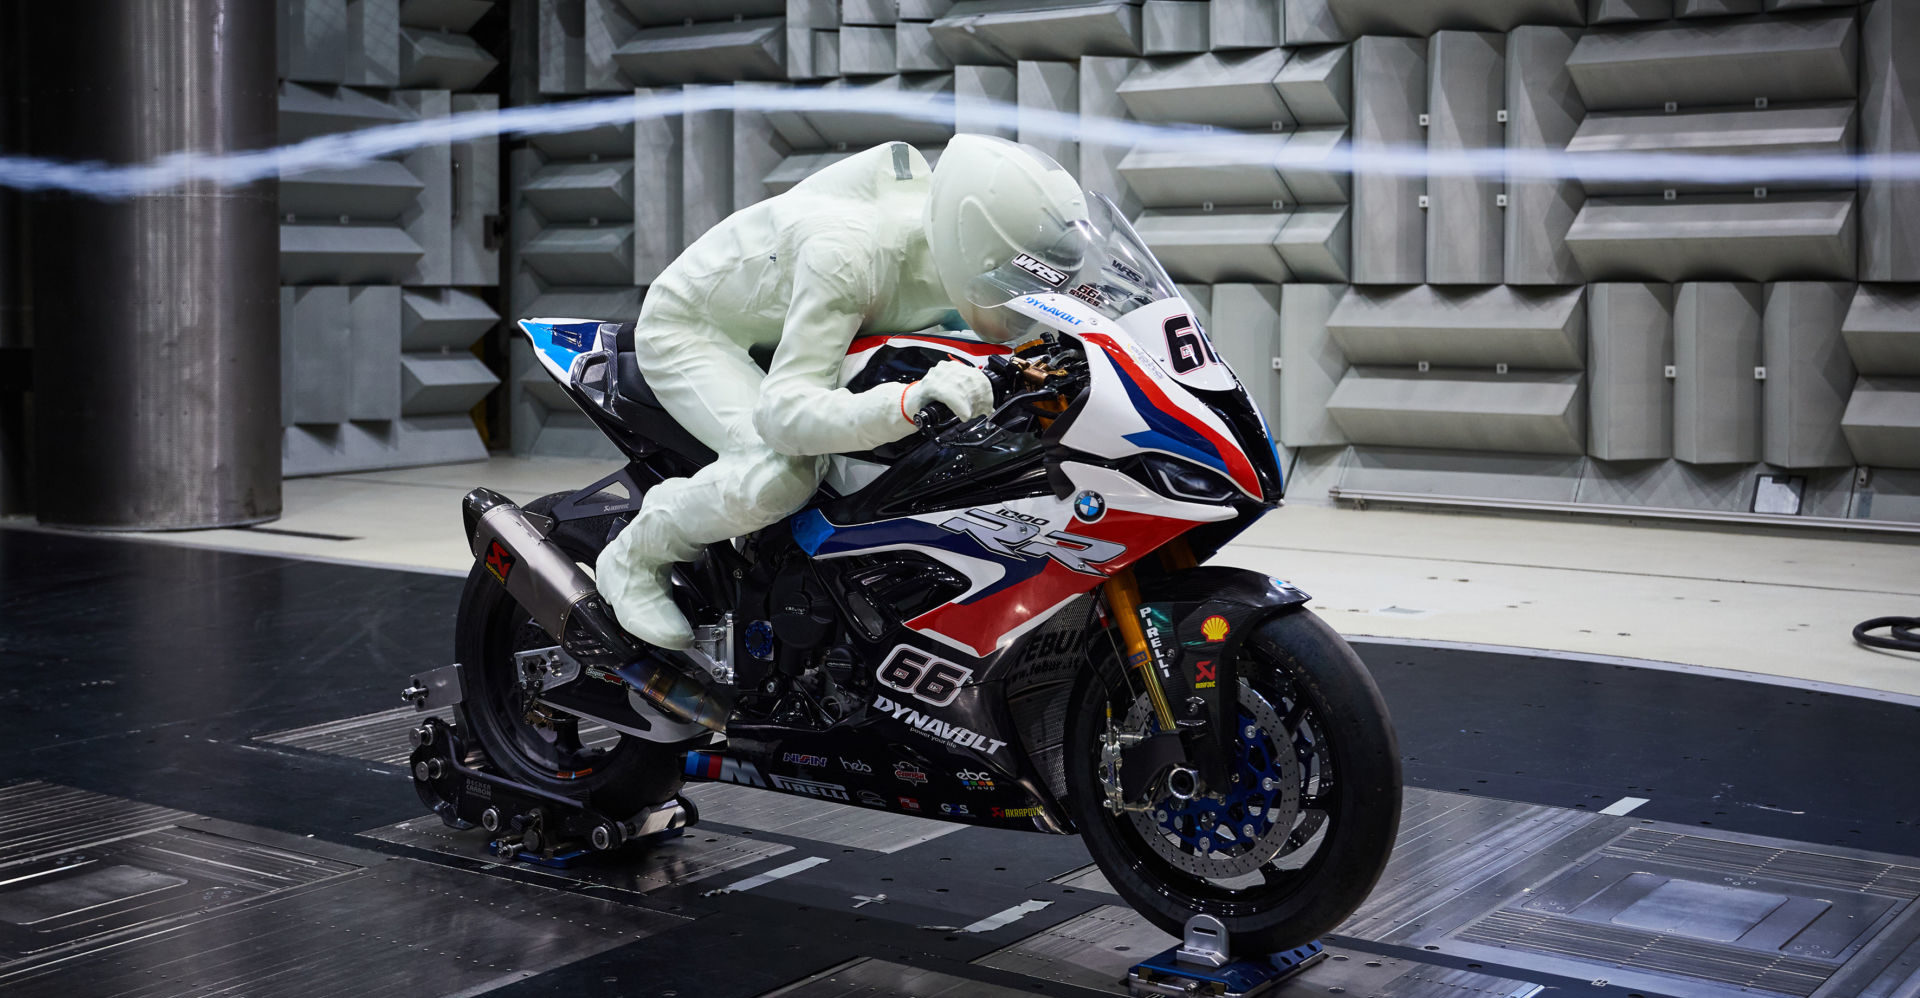 A 3D model of Eugene Laverty on one of Tom Sykes' BMW S1000RR Superbikes in BMW's wind tunnel in Germany. Photo courtesy BMW Motorrad Motorsport.